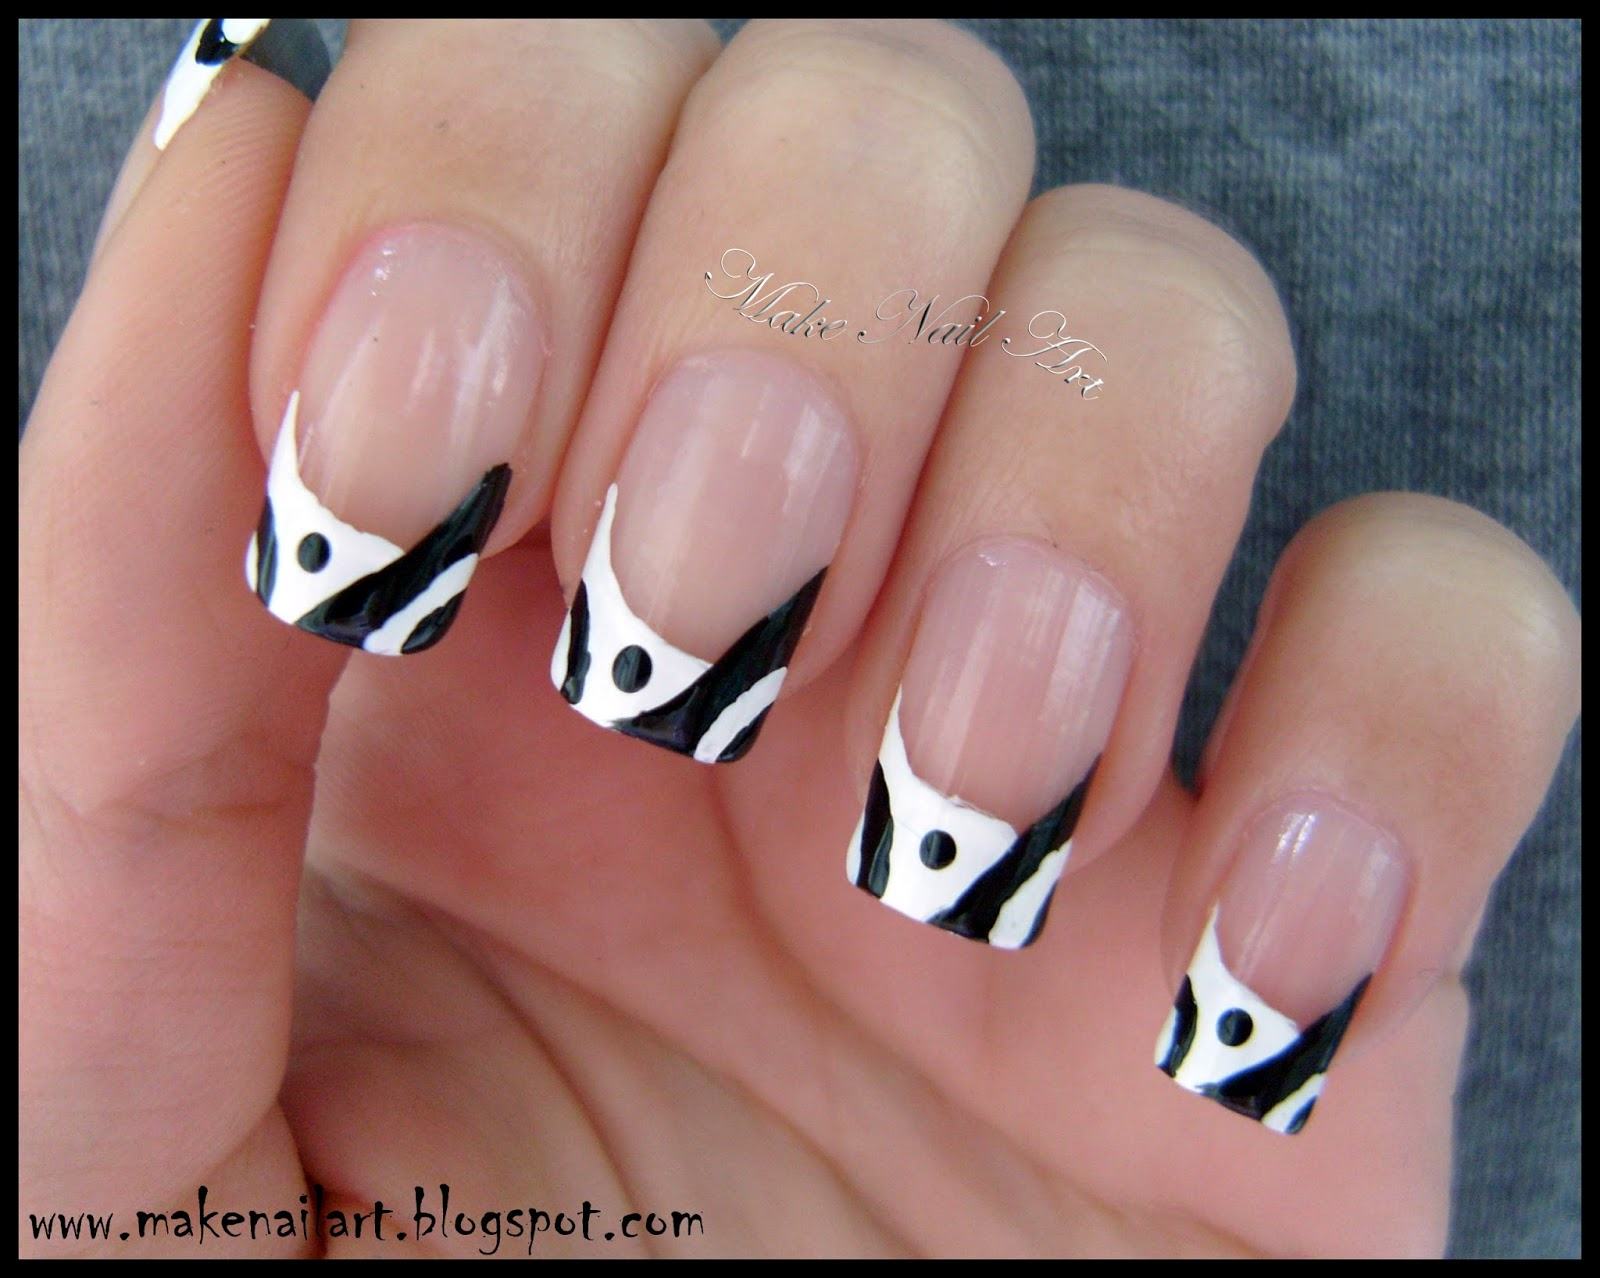 Make Nail Art: April 2014